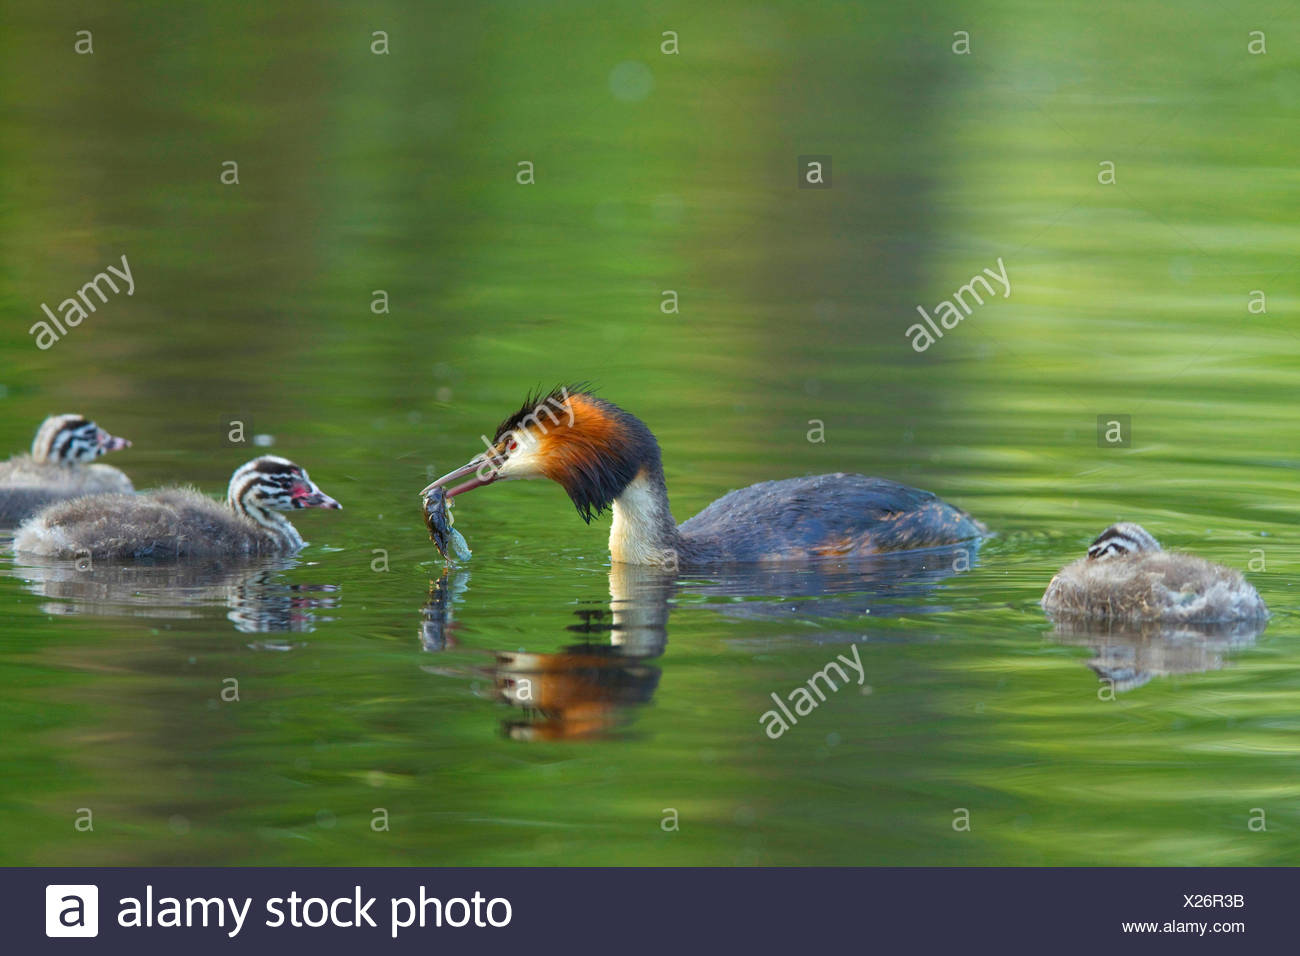 great crested grebe (Podiceps cristatus), adult bird with feed in the bill swimming with three young animals on the water, Germany - Stock Image